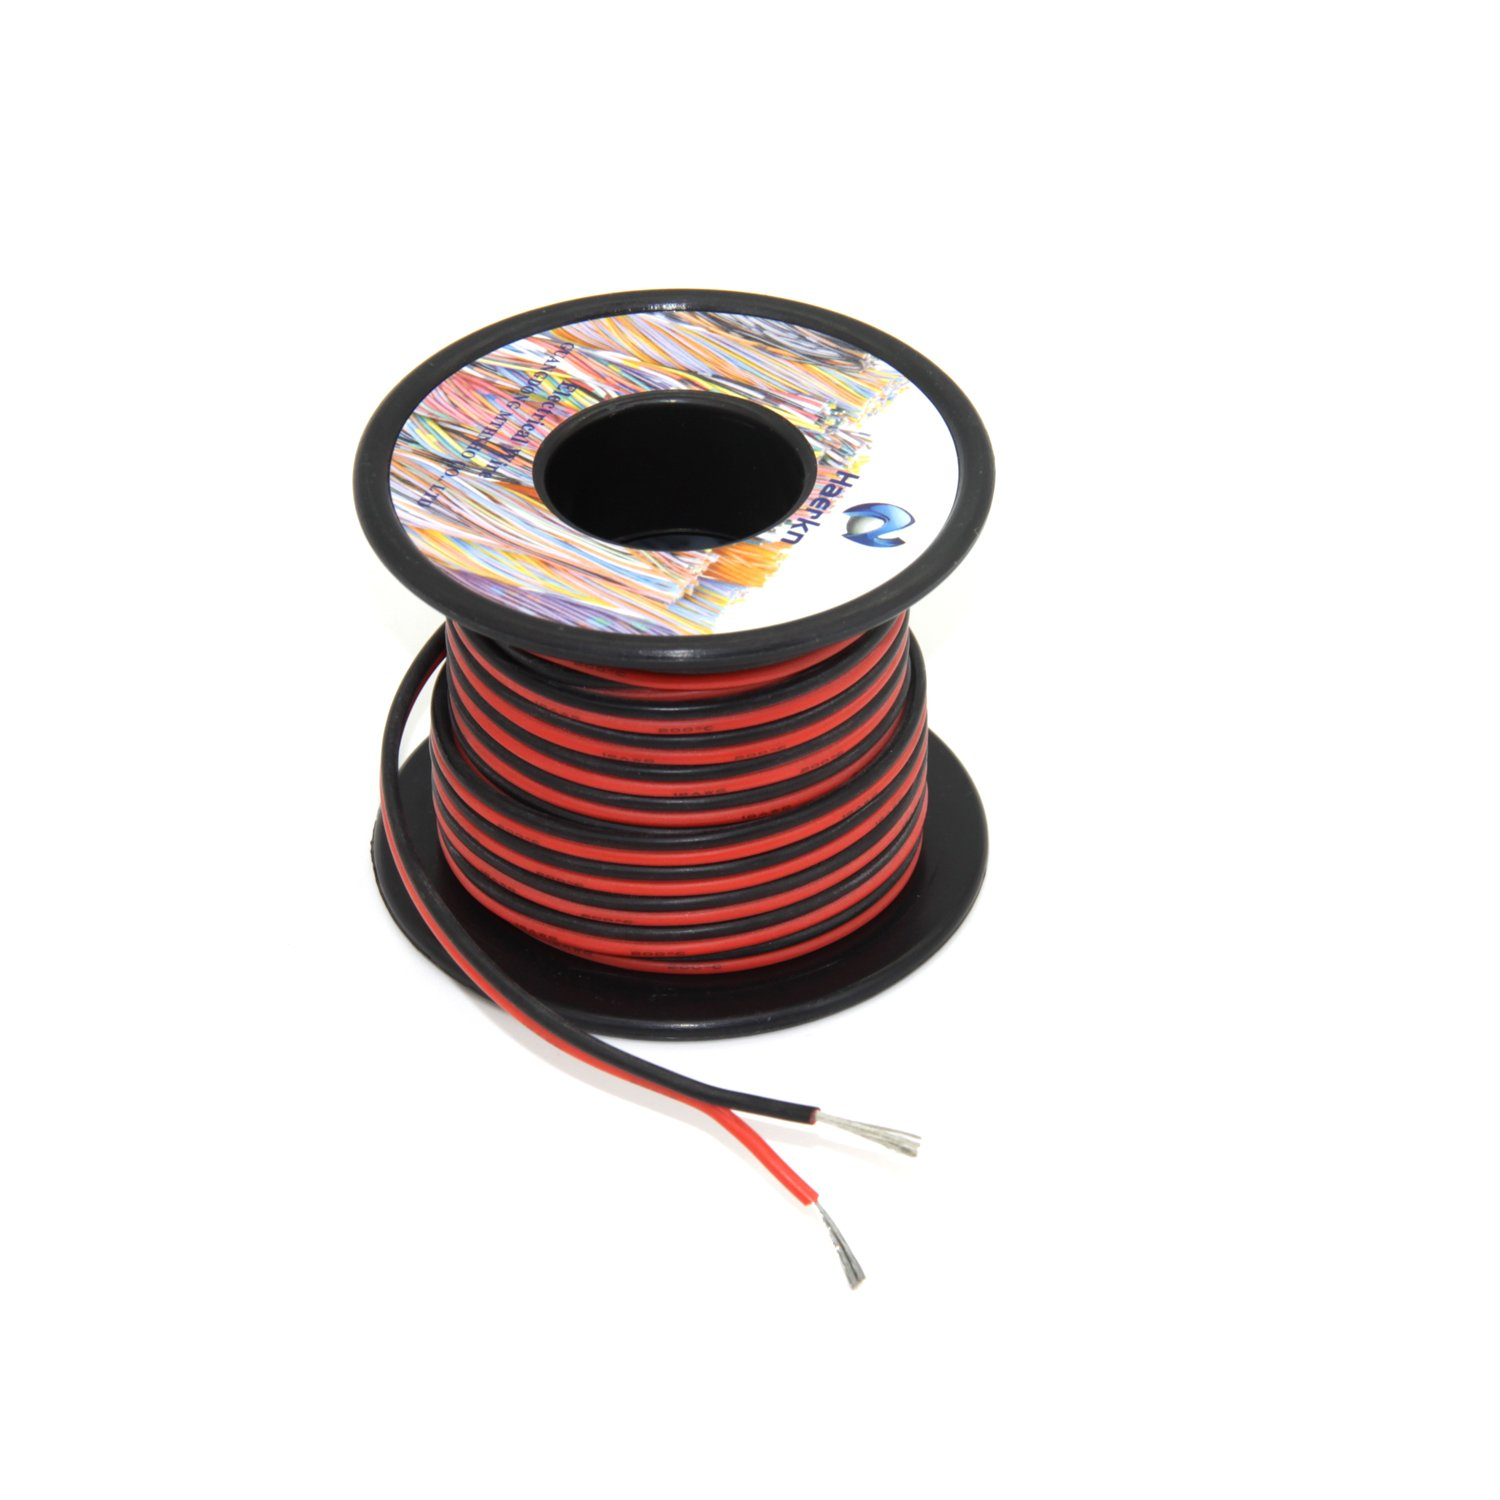 10 Gauge Electrical wire Marine Grade Primary wire Cable High Voltage 1000V Automotive high temperature wire battery cable 10 AWG Stranded of Tinned copper Hook up wire Hard wires 25FT Black Roll